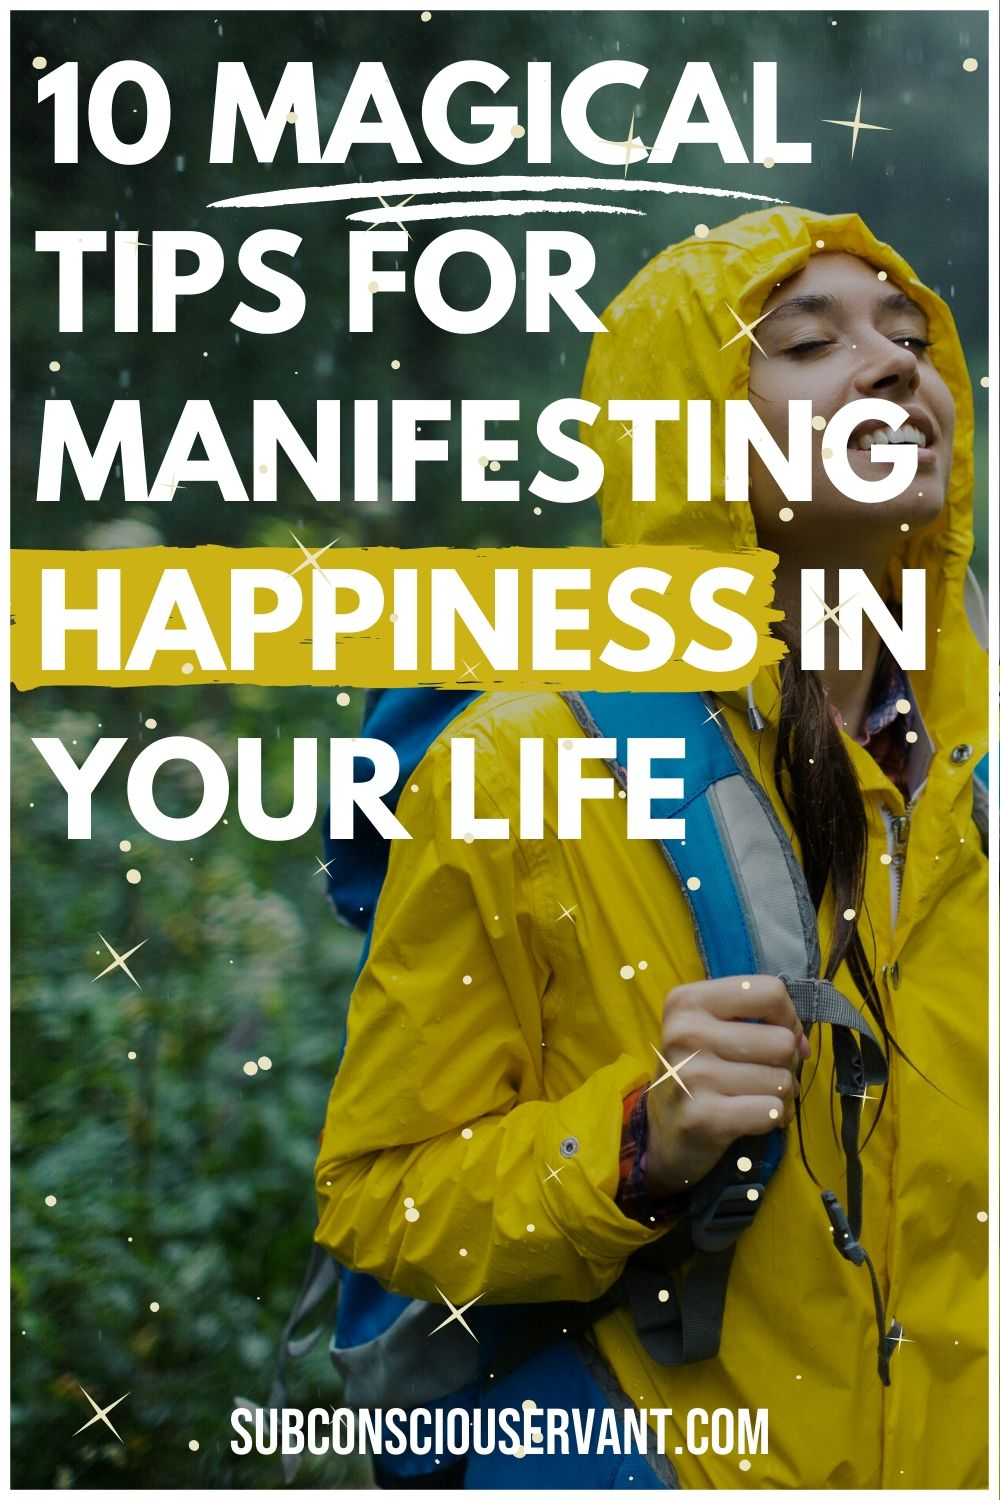 Make Manifesting Happiness Easy With These 10 Magical Tips